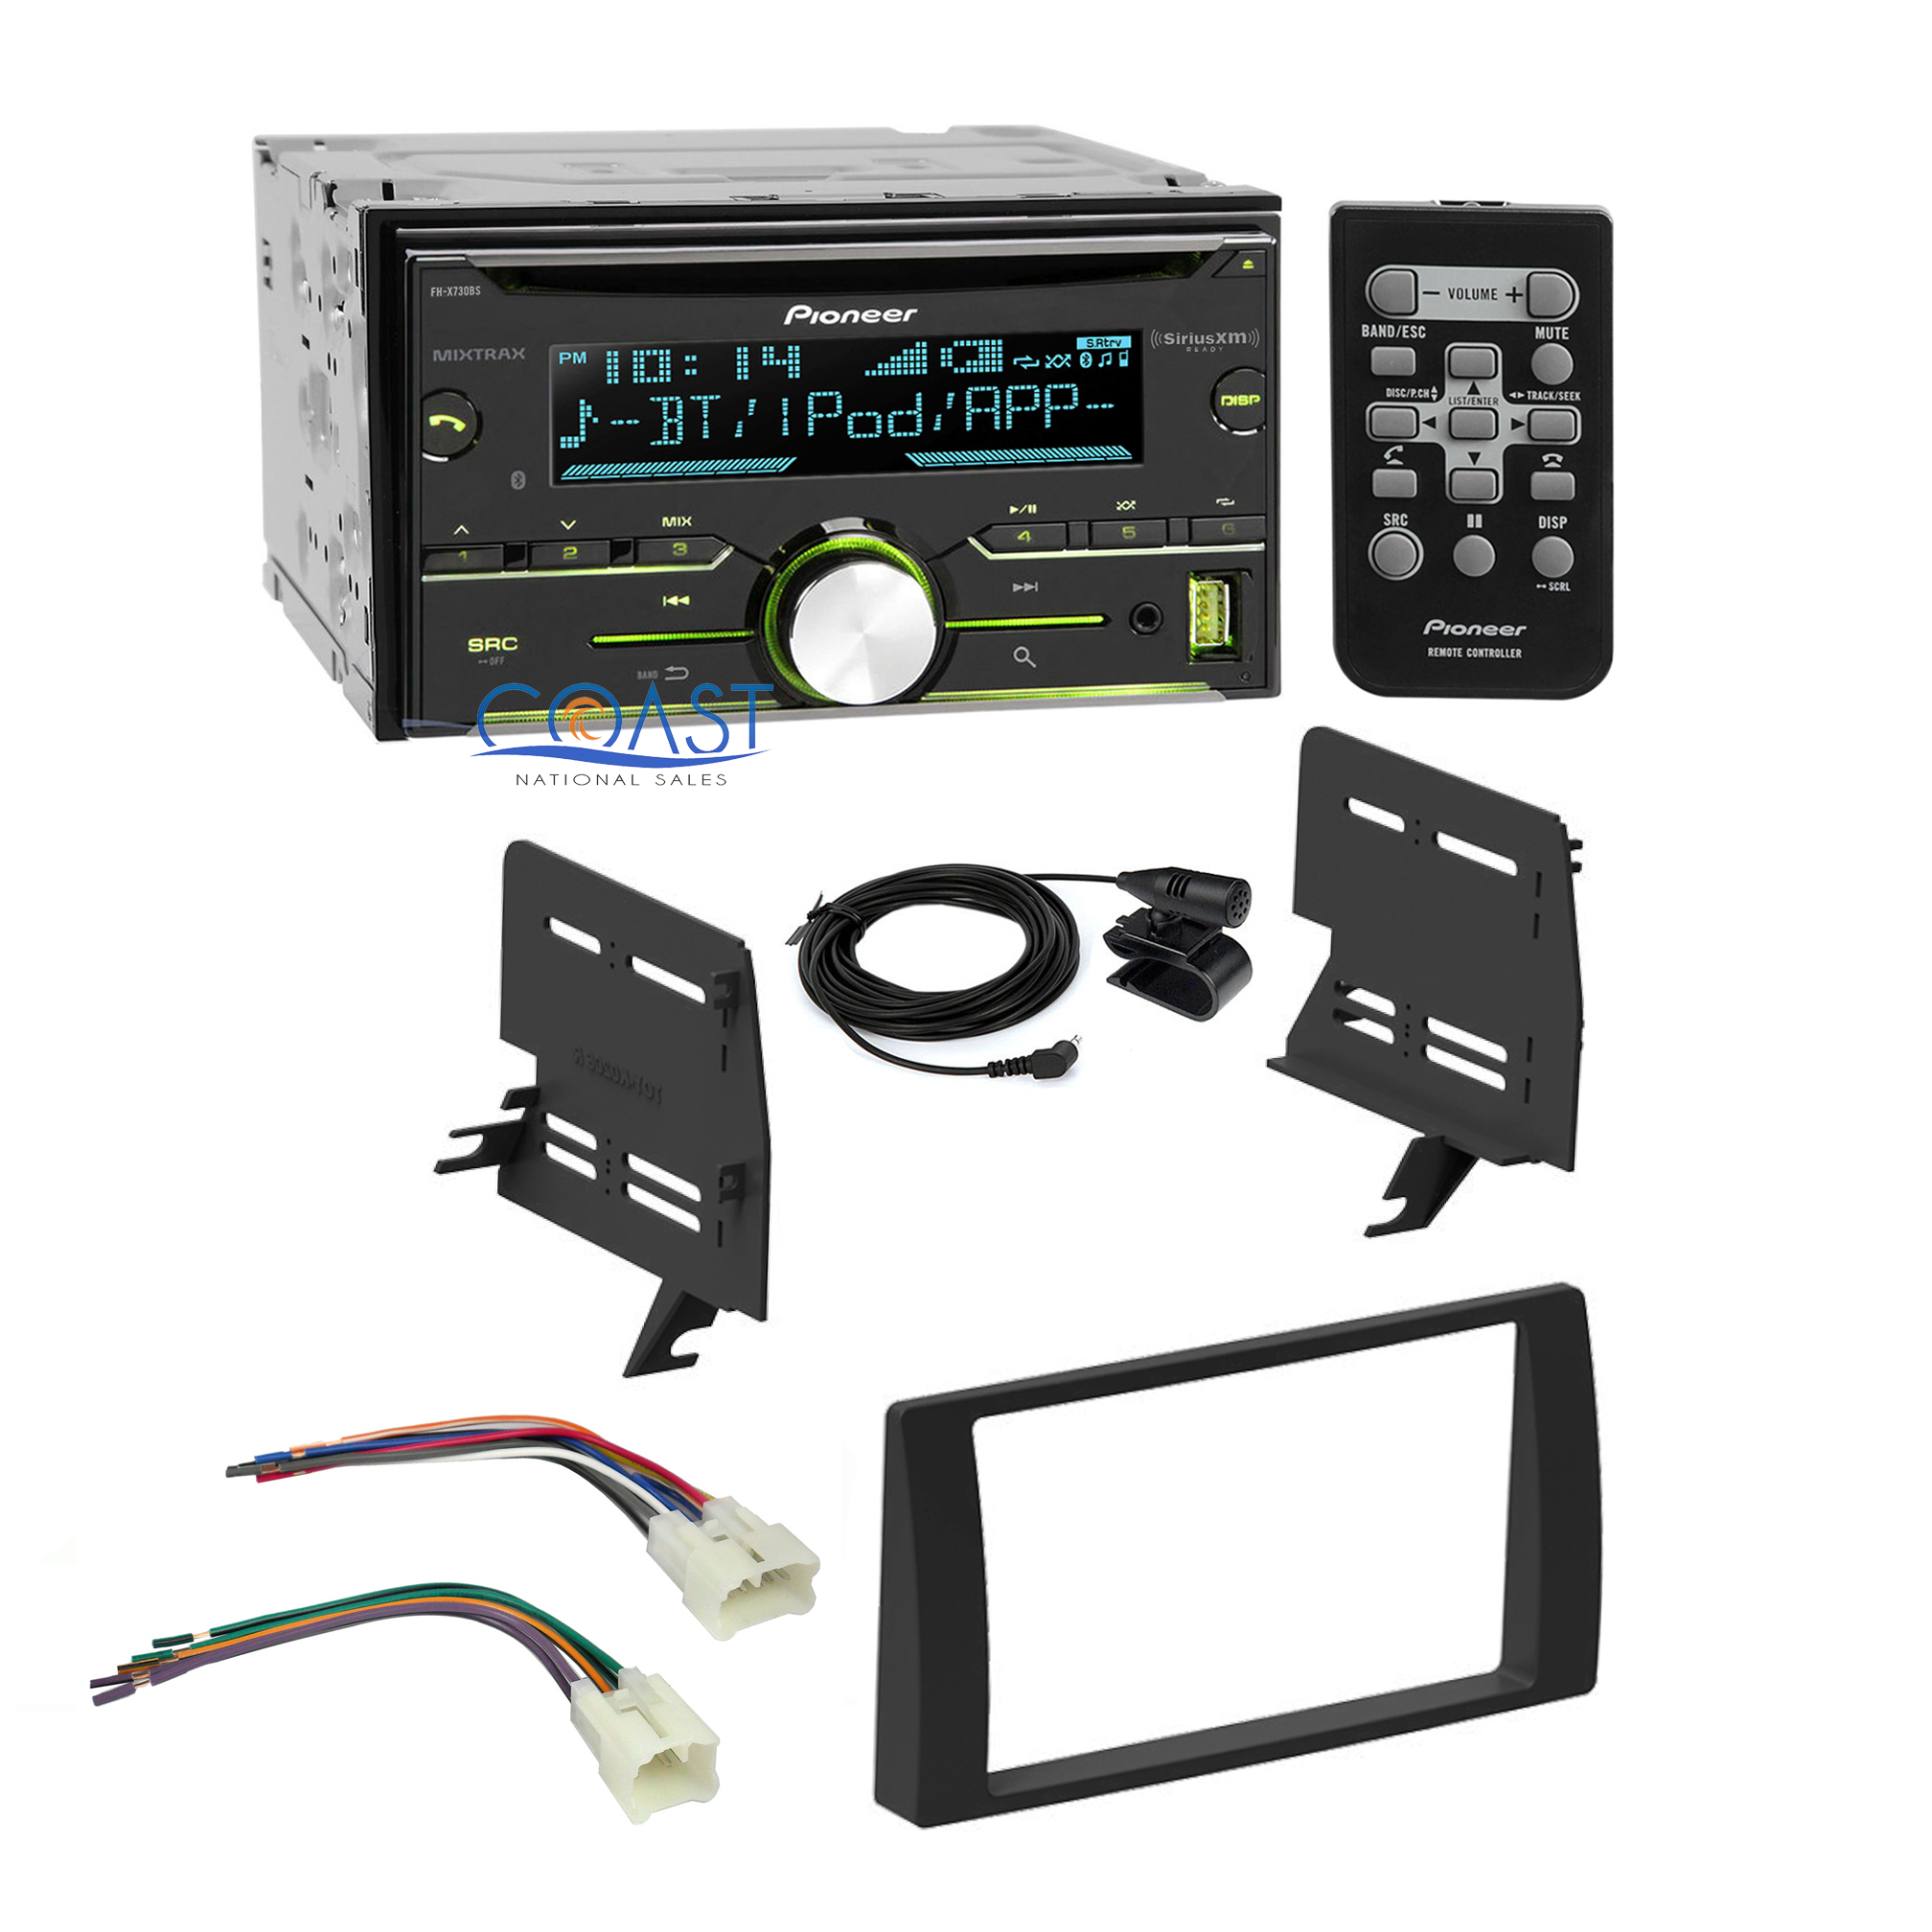 pioneer car sirius xm stereo 2 din dash kit harness for 2002 2006 toyota camry ebay. Black Bedroom Furniture Sets. Home Design Ideas